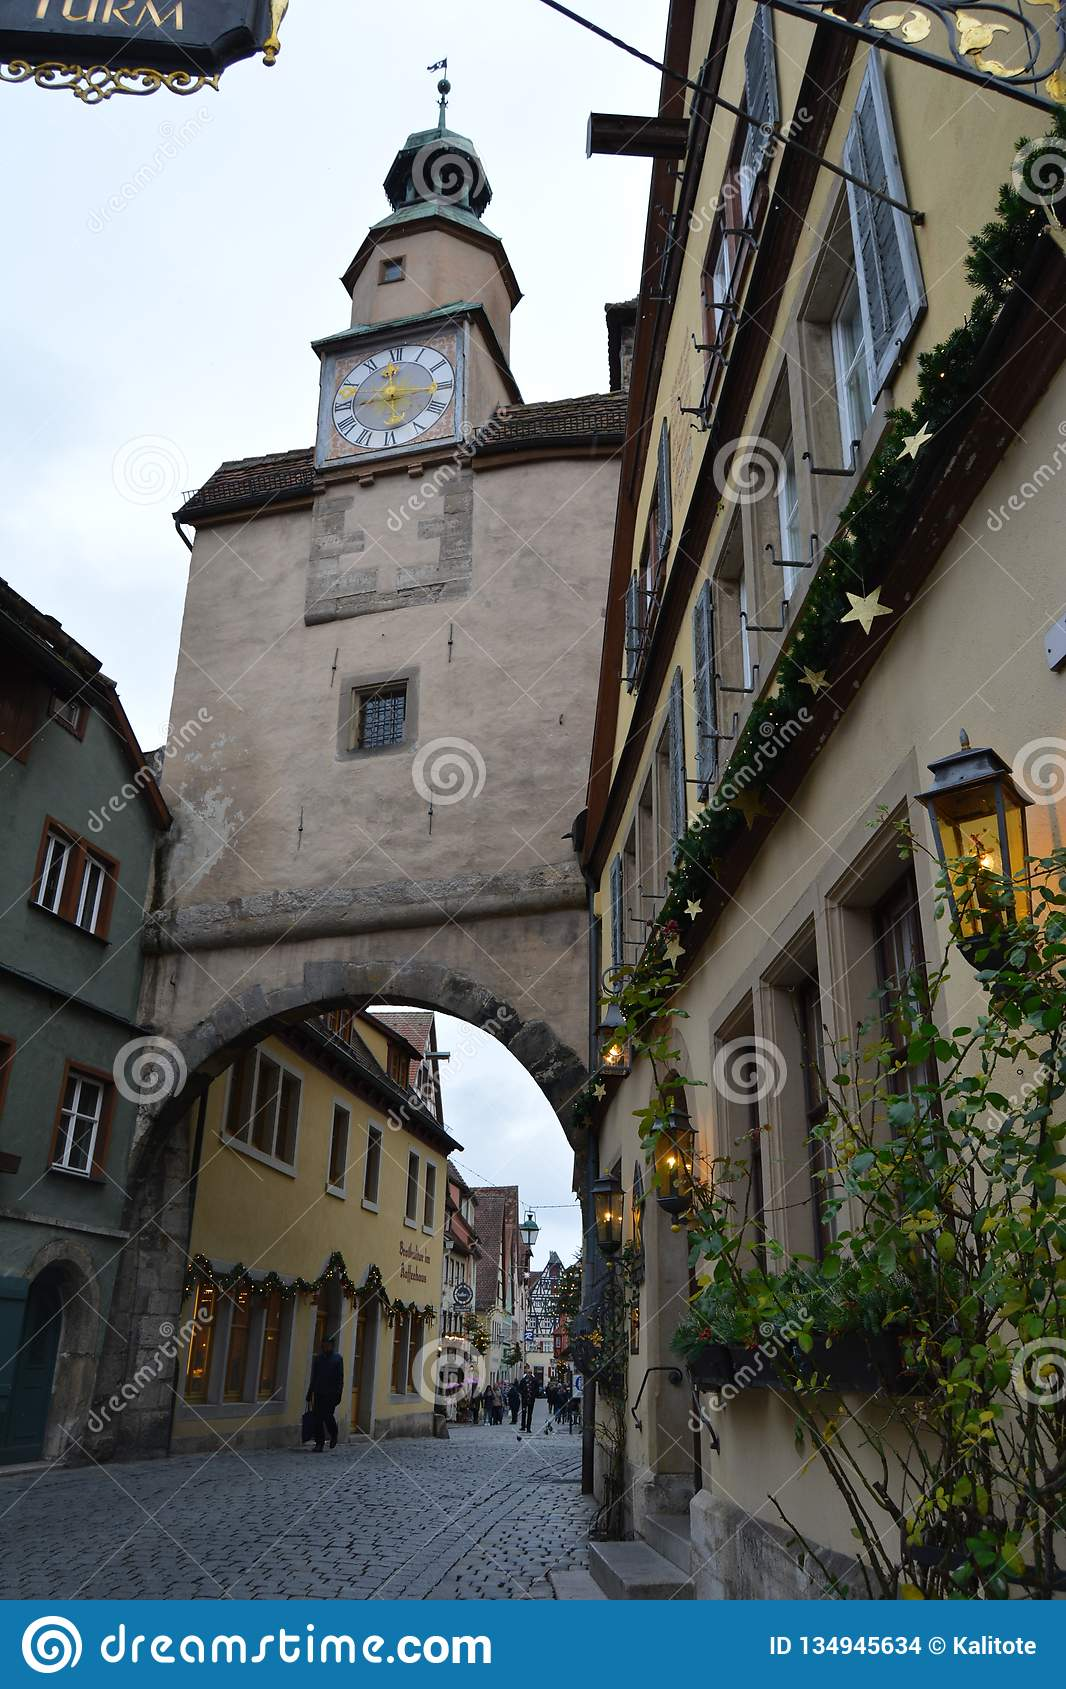 Clock Tower, Rothenburg ob der Tauber, Germany, at Christmas